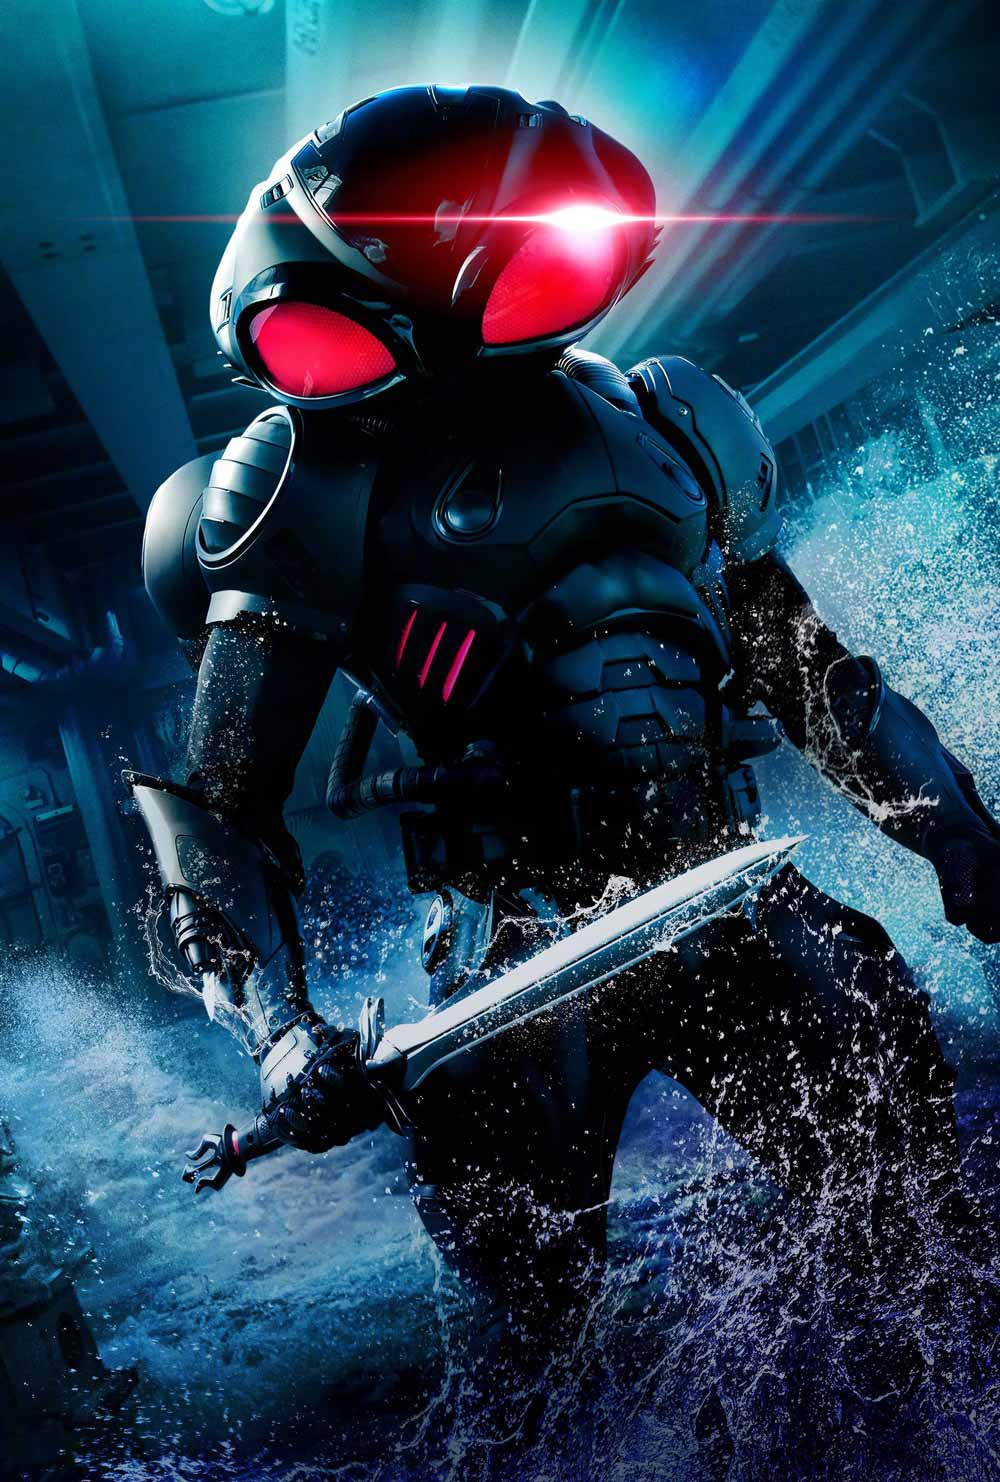 Black Manta Character-Textless Poster